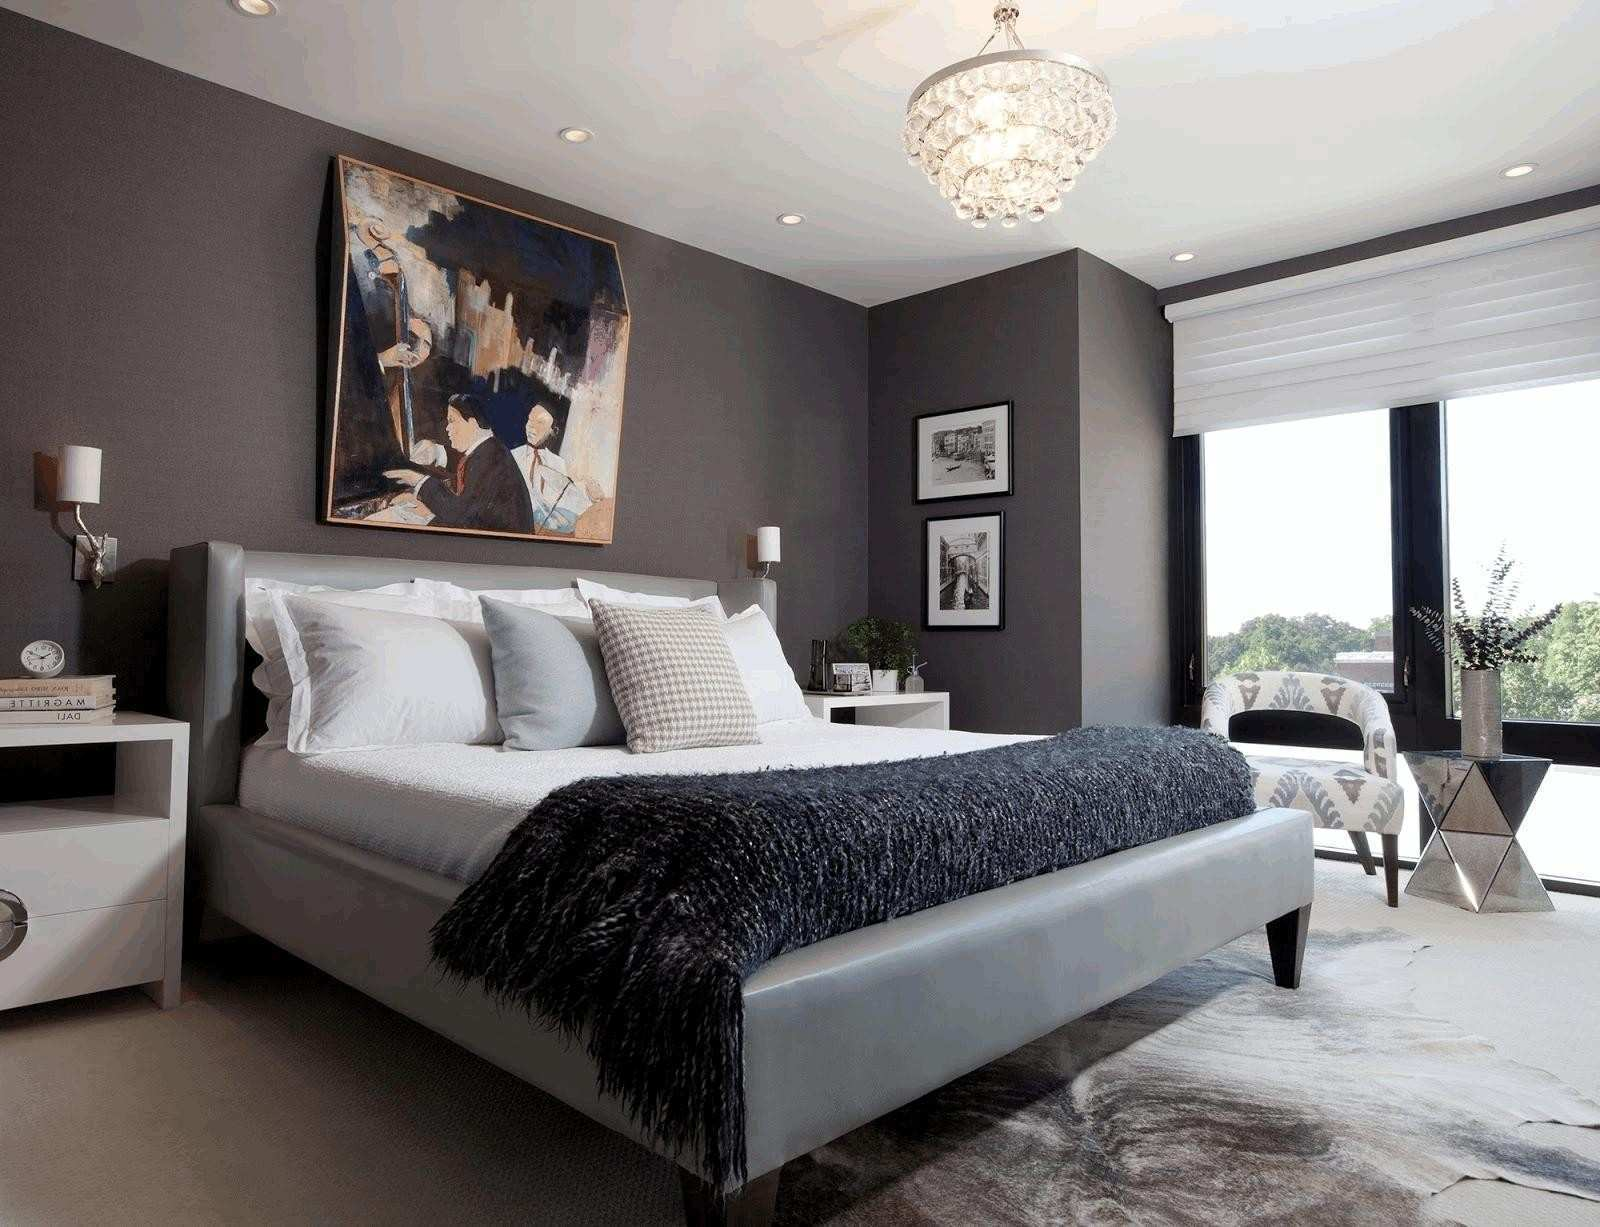 Picture Frame Designs On Walls Fresh Bedroom Ideas Using Grey Rectangular Mirror with Chrome Frame White